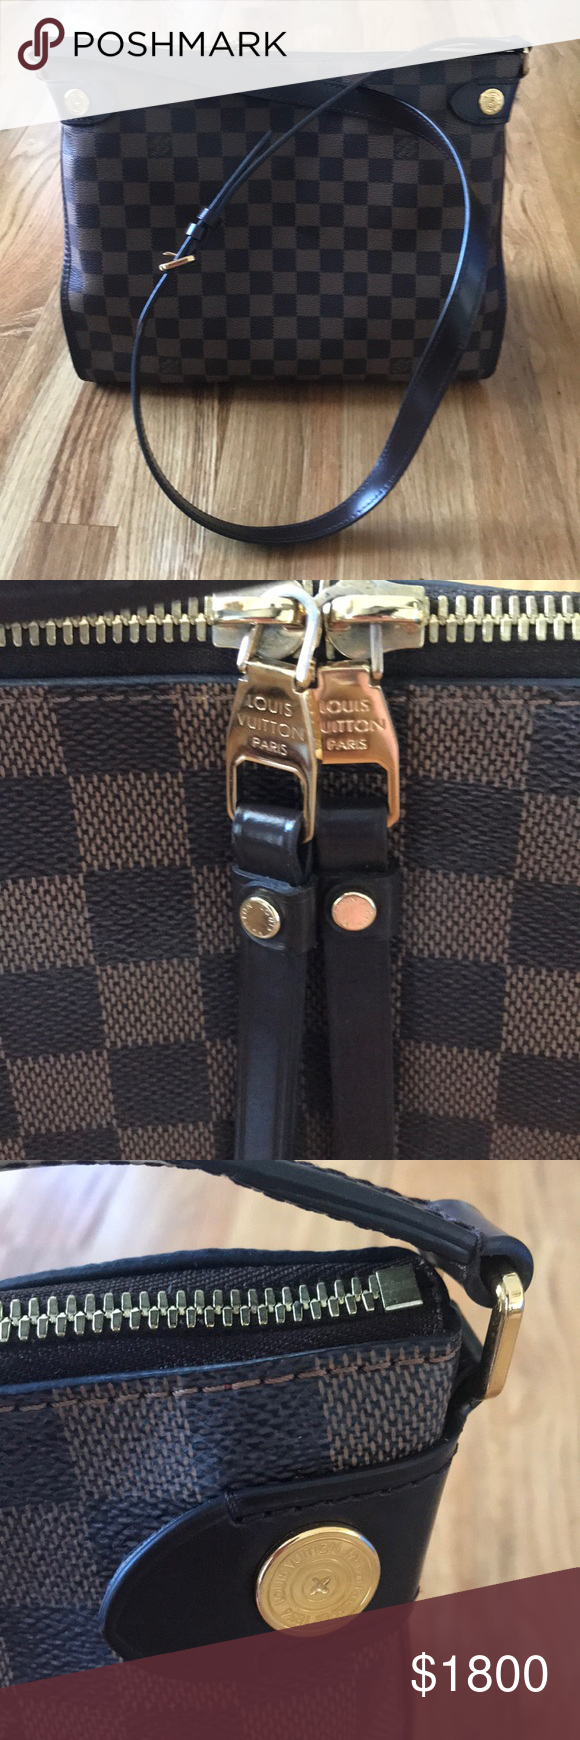 236682962e37 Authentic Louis Vuitton Duomo Crossbody Authentic crossbody in DE Interior  looks perfect- no stains or